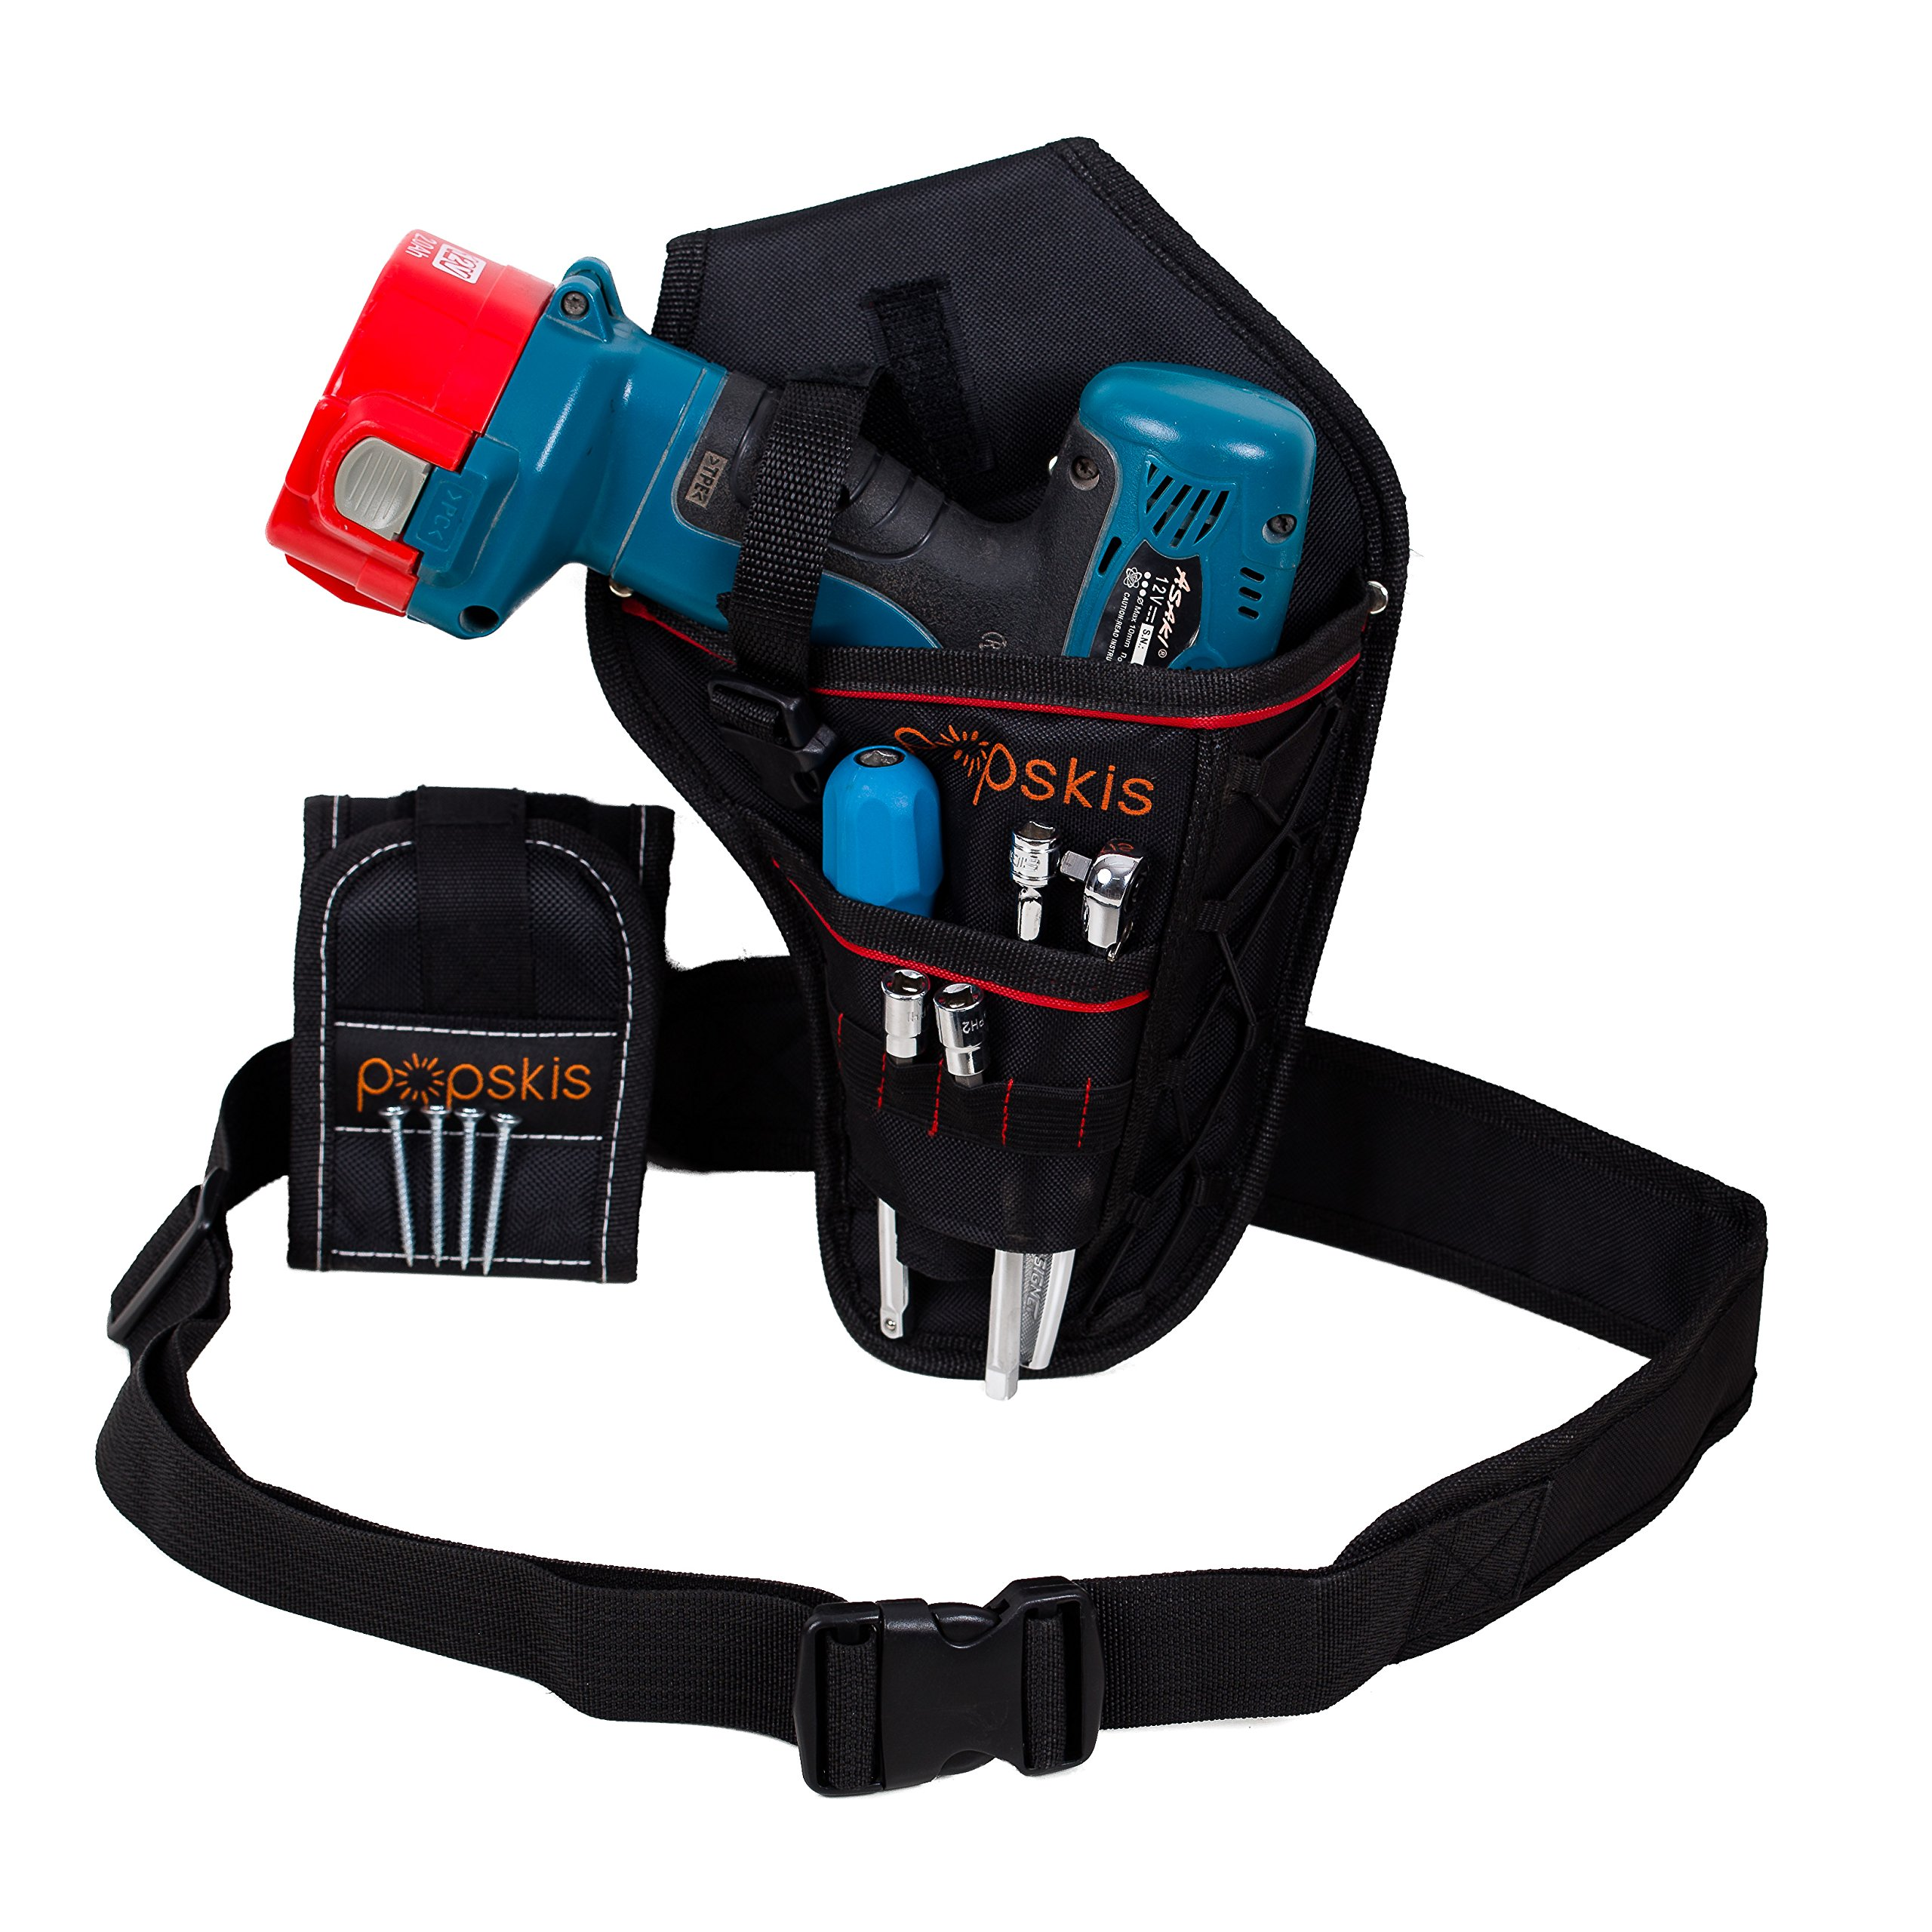 Cordless Drill Holster With Adjustable Belt & Magnetic Wristband Accessories Holds Light Battery Tools Screws Nuts Bolts Drill Bits by pOpskis